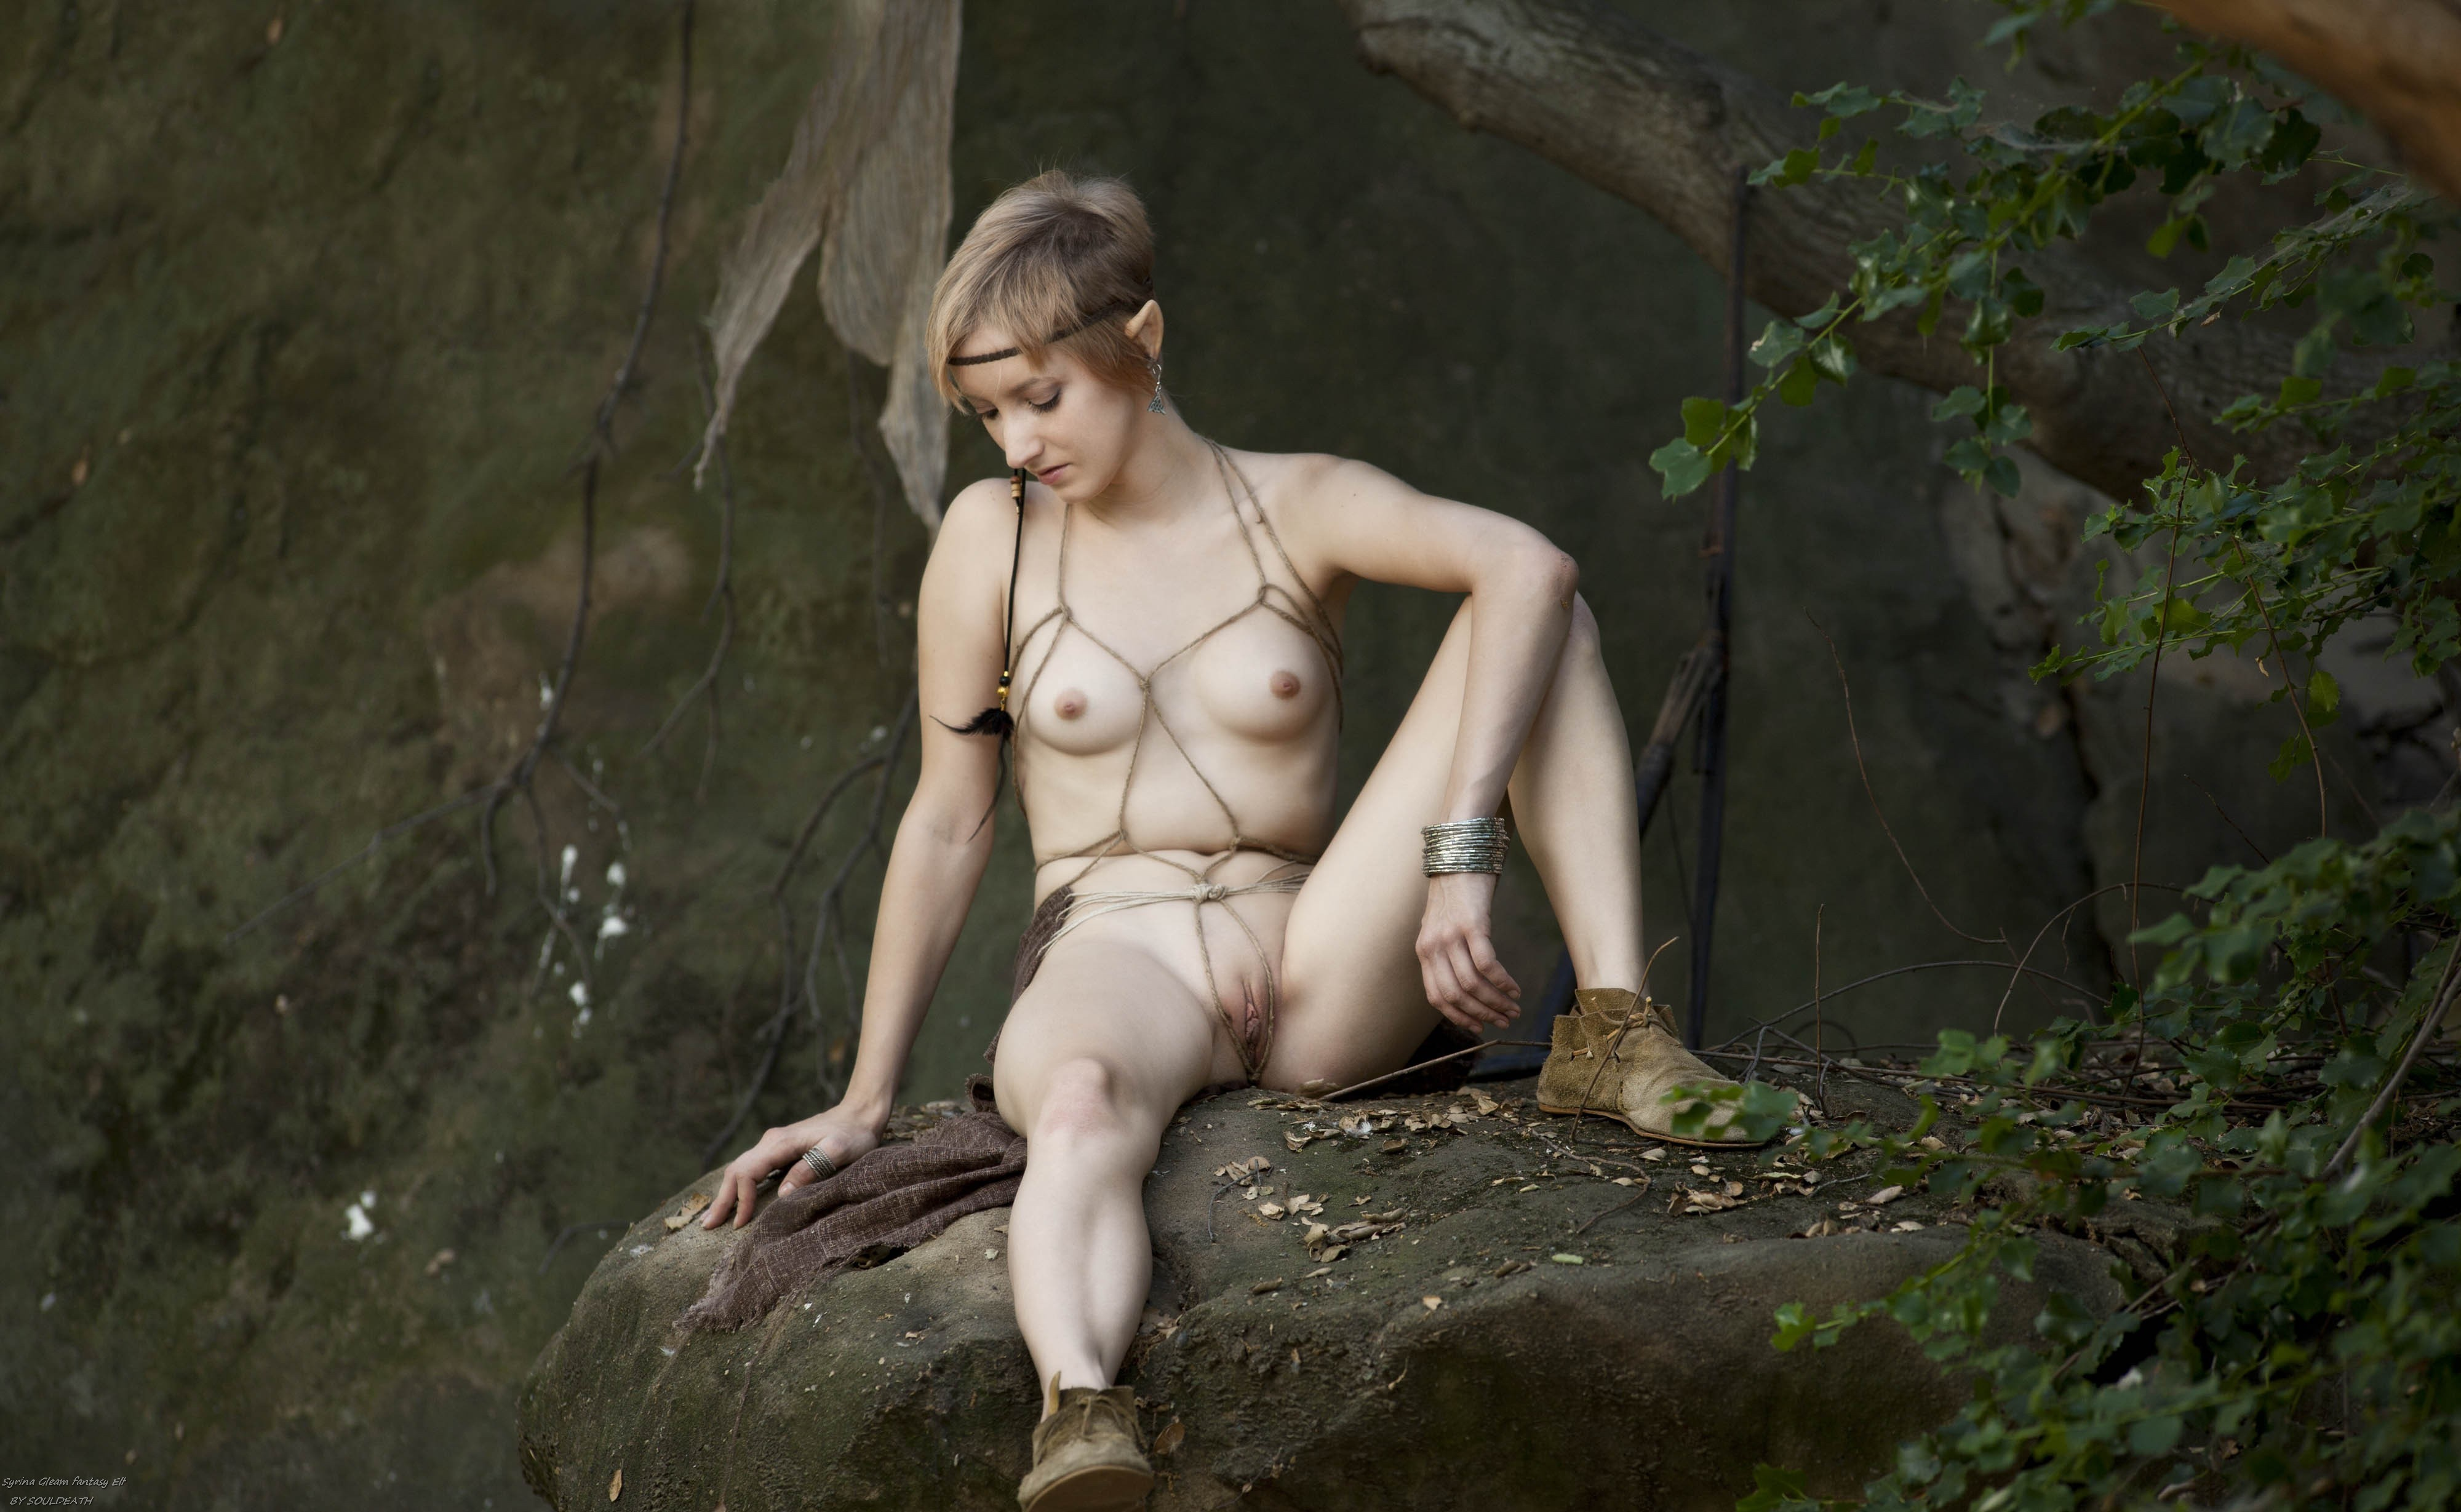 Free nude elven fantasy desktop backgrounds sex videos